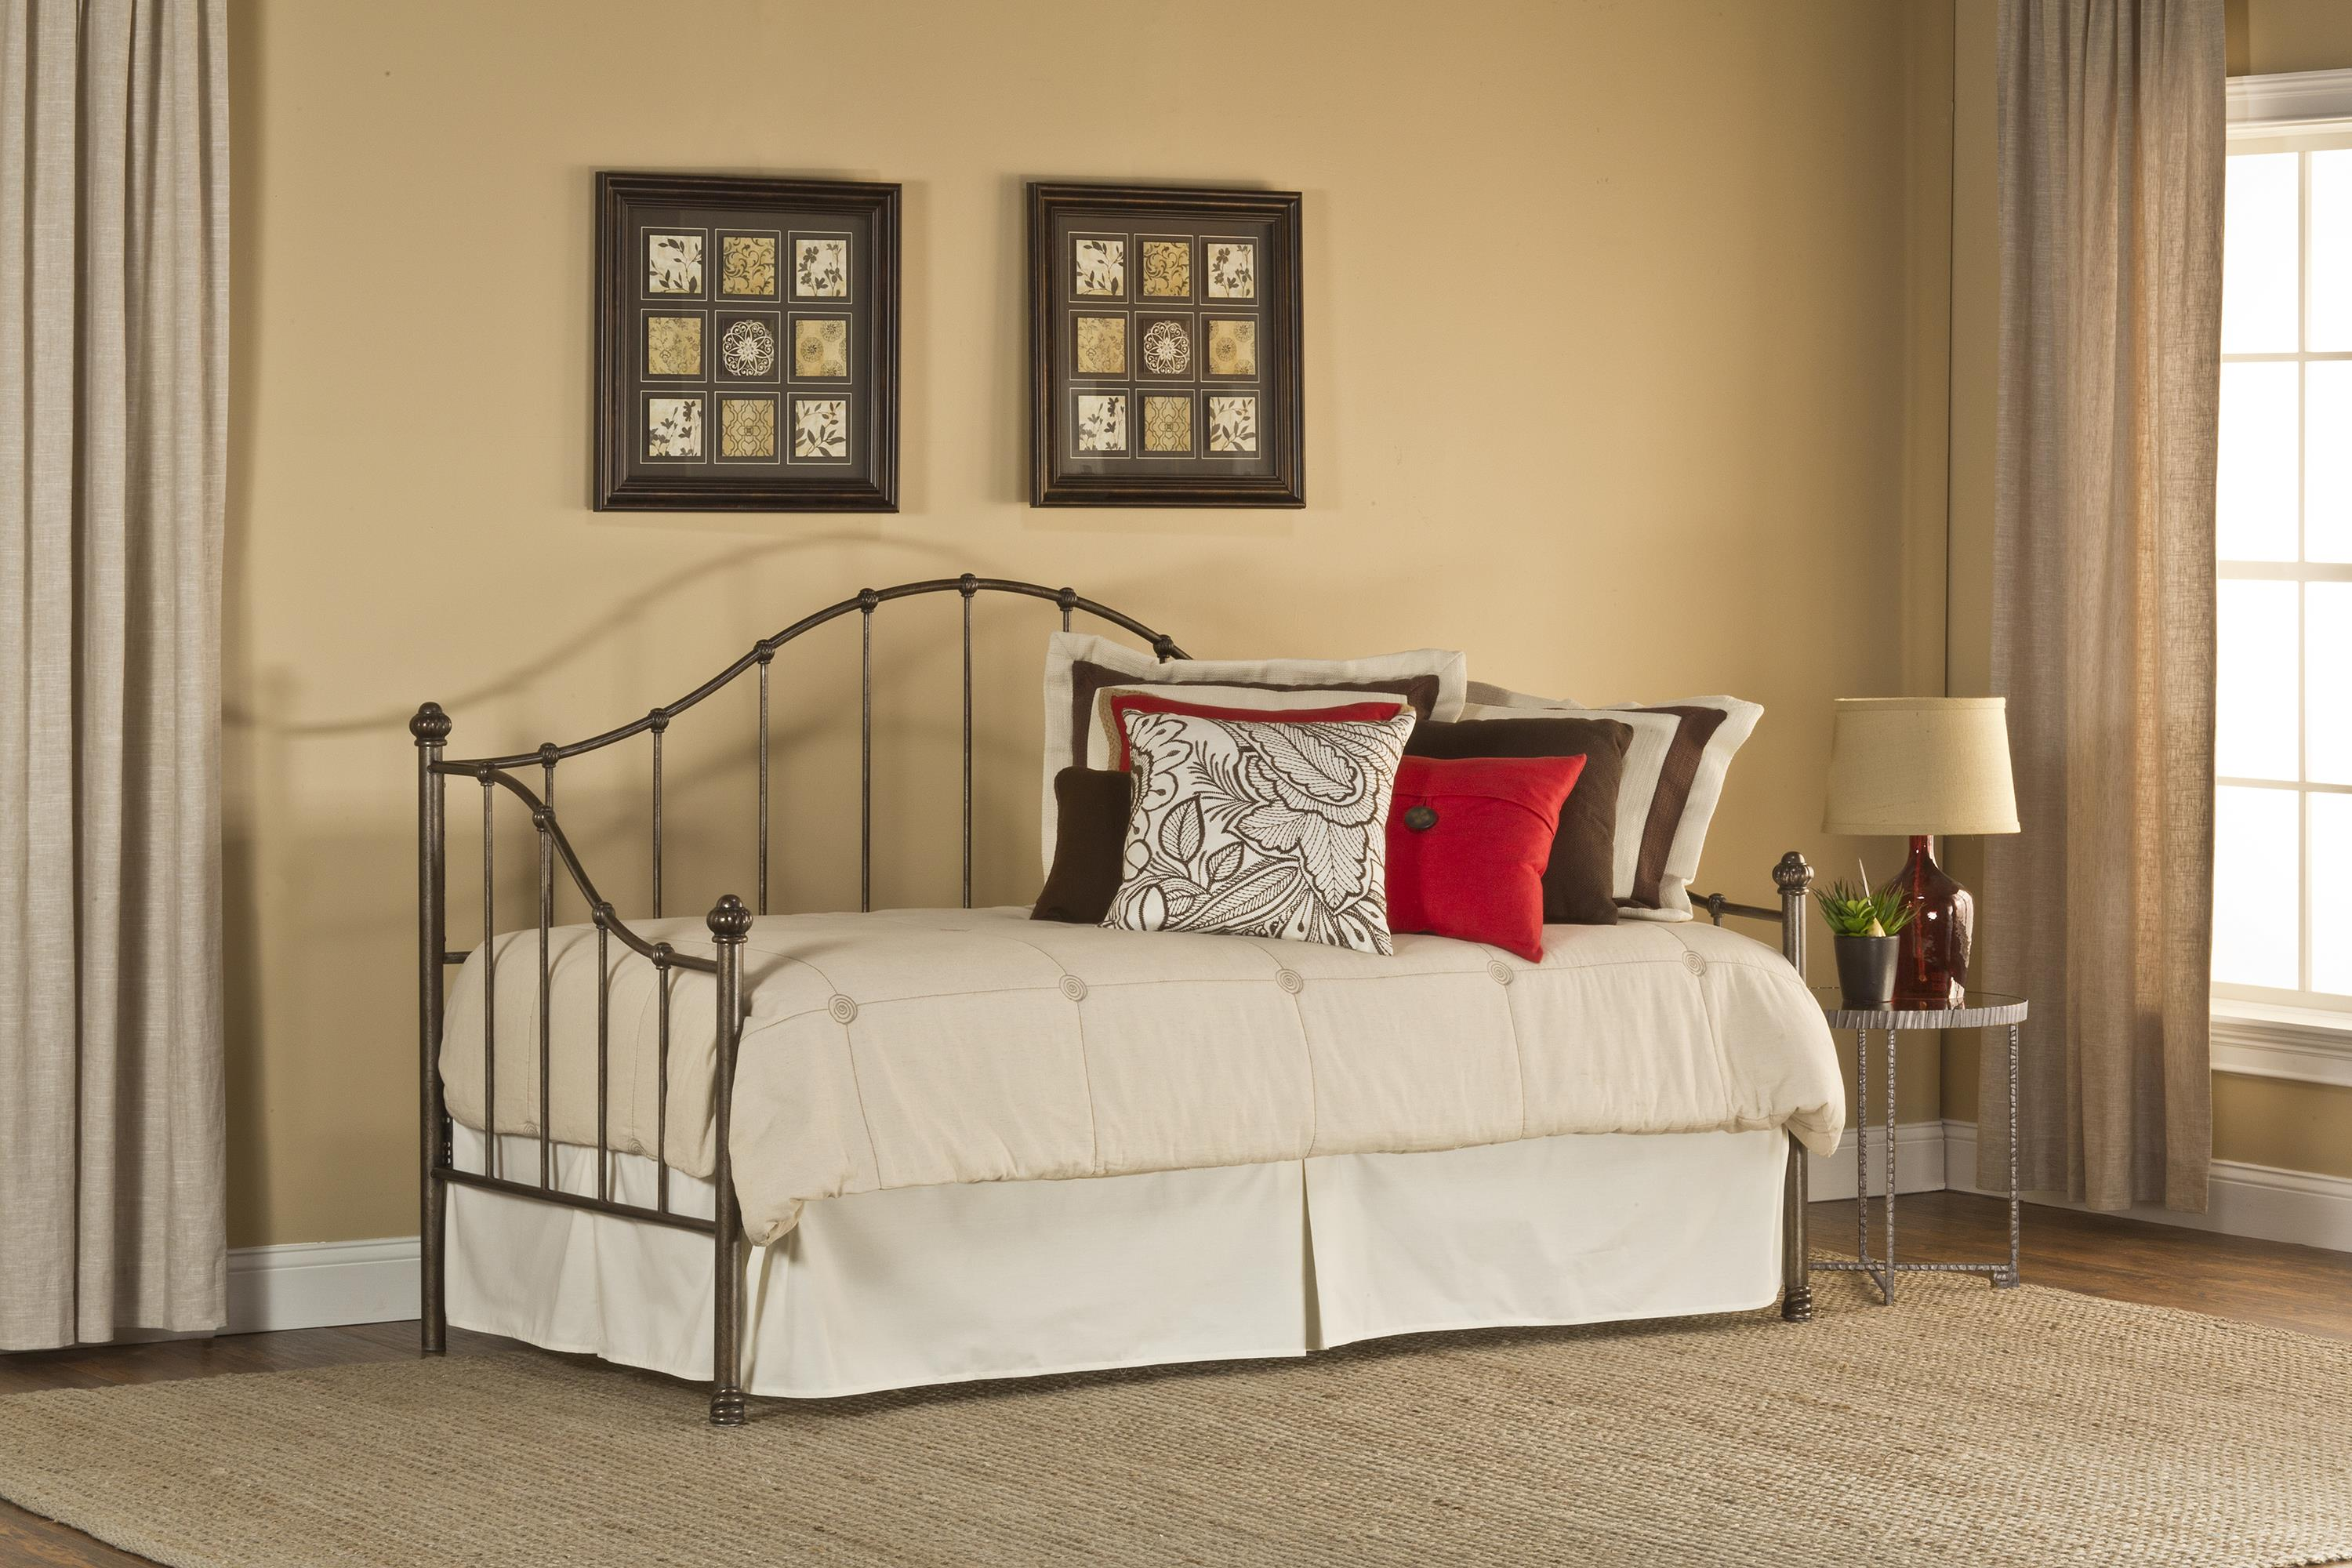 Hillsdale Daybeds Amy Daybed with Suspension Deck - Item Number: 1271DBLH